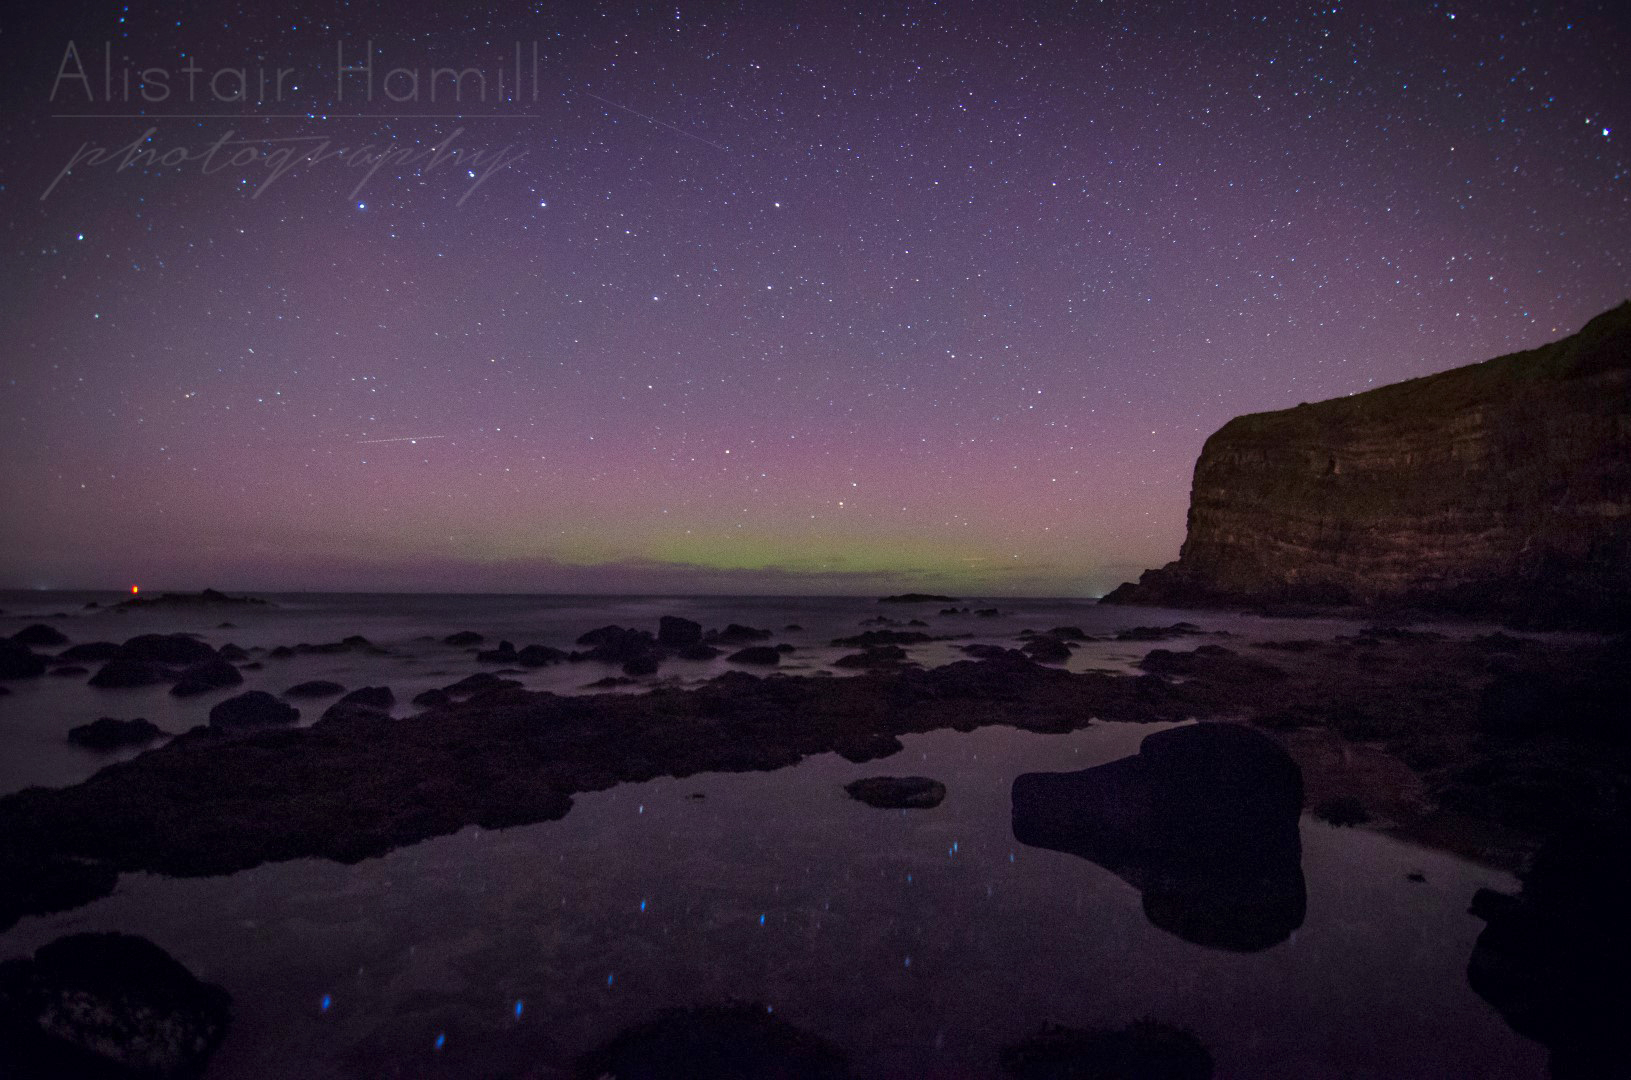 The aurora continued to intensify slightly as the night progressed.